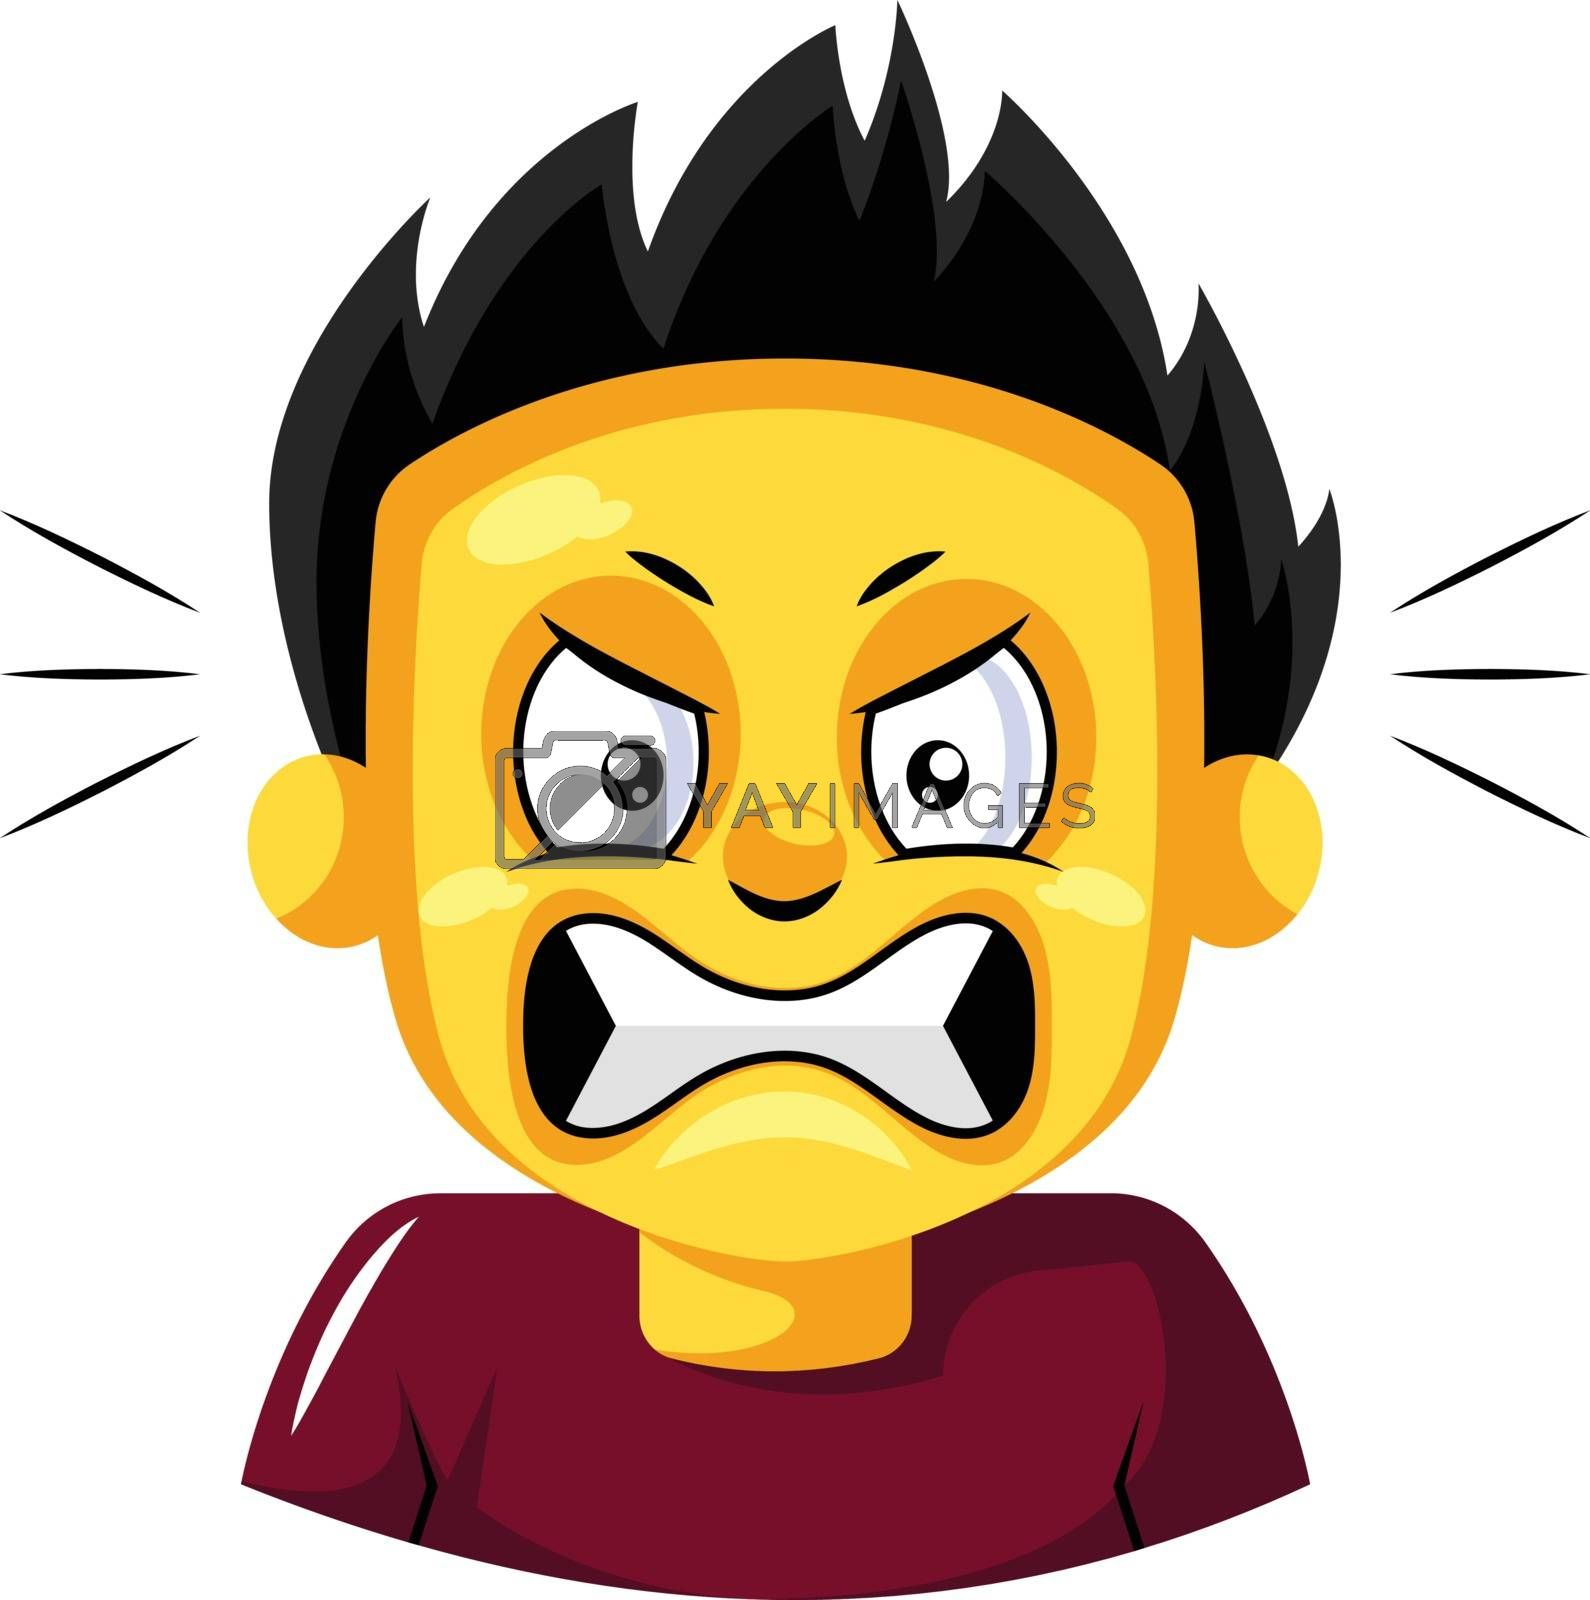 Royalty free image of Angry looking young guy illustration vector on white background by Morphart